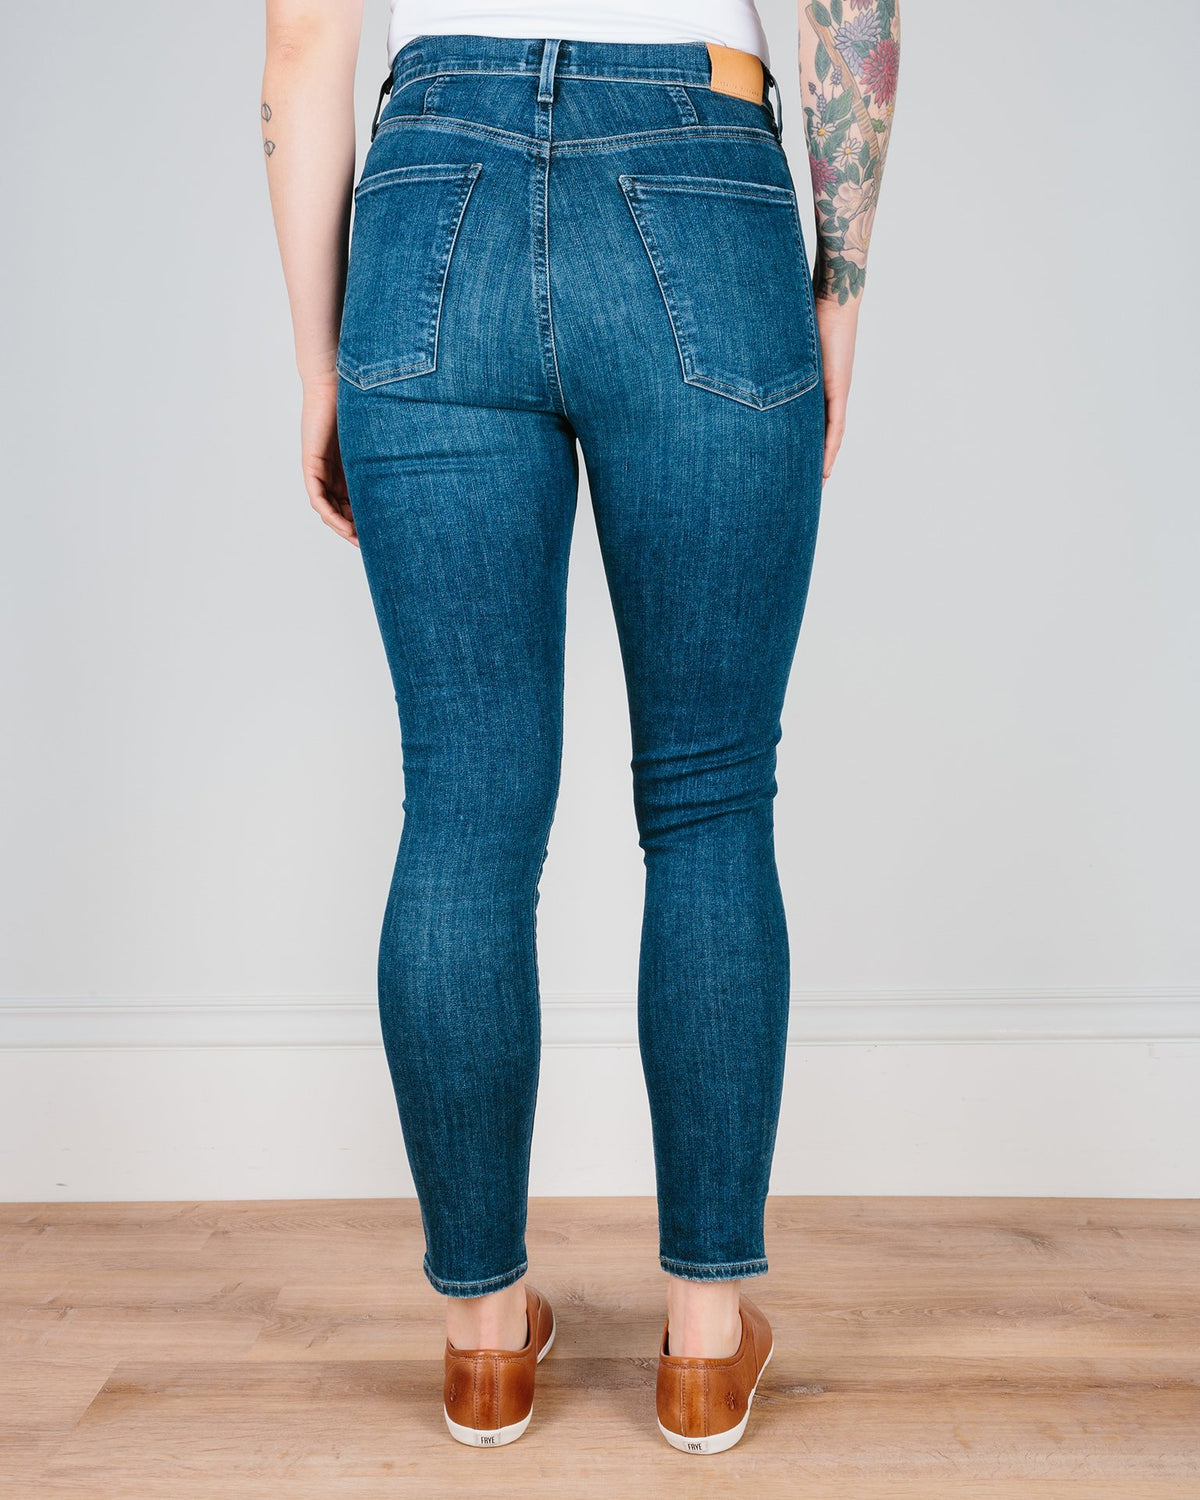 Citizen's of Humanity Denim Carmel / 24 Chrissy High Rise Skinny in Carmel